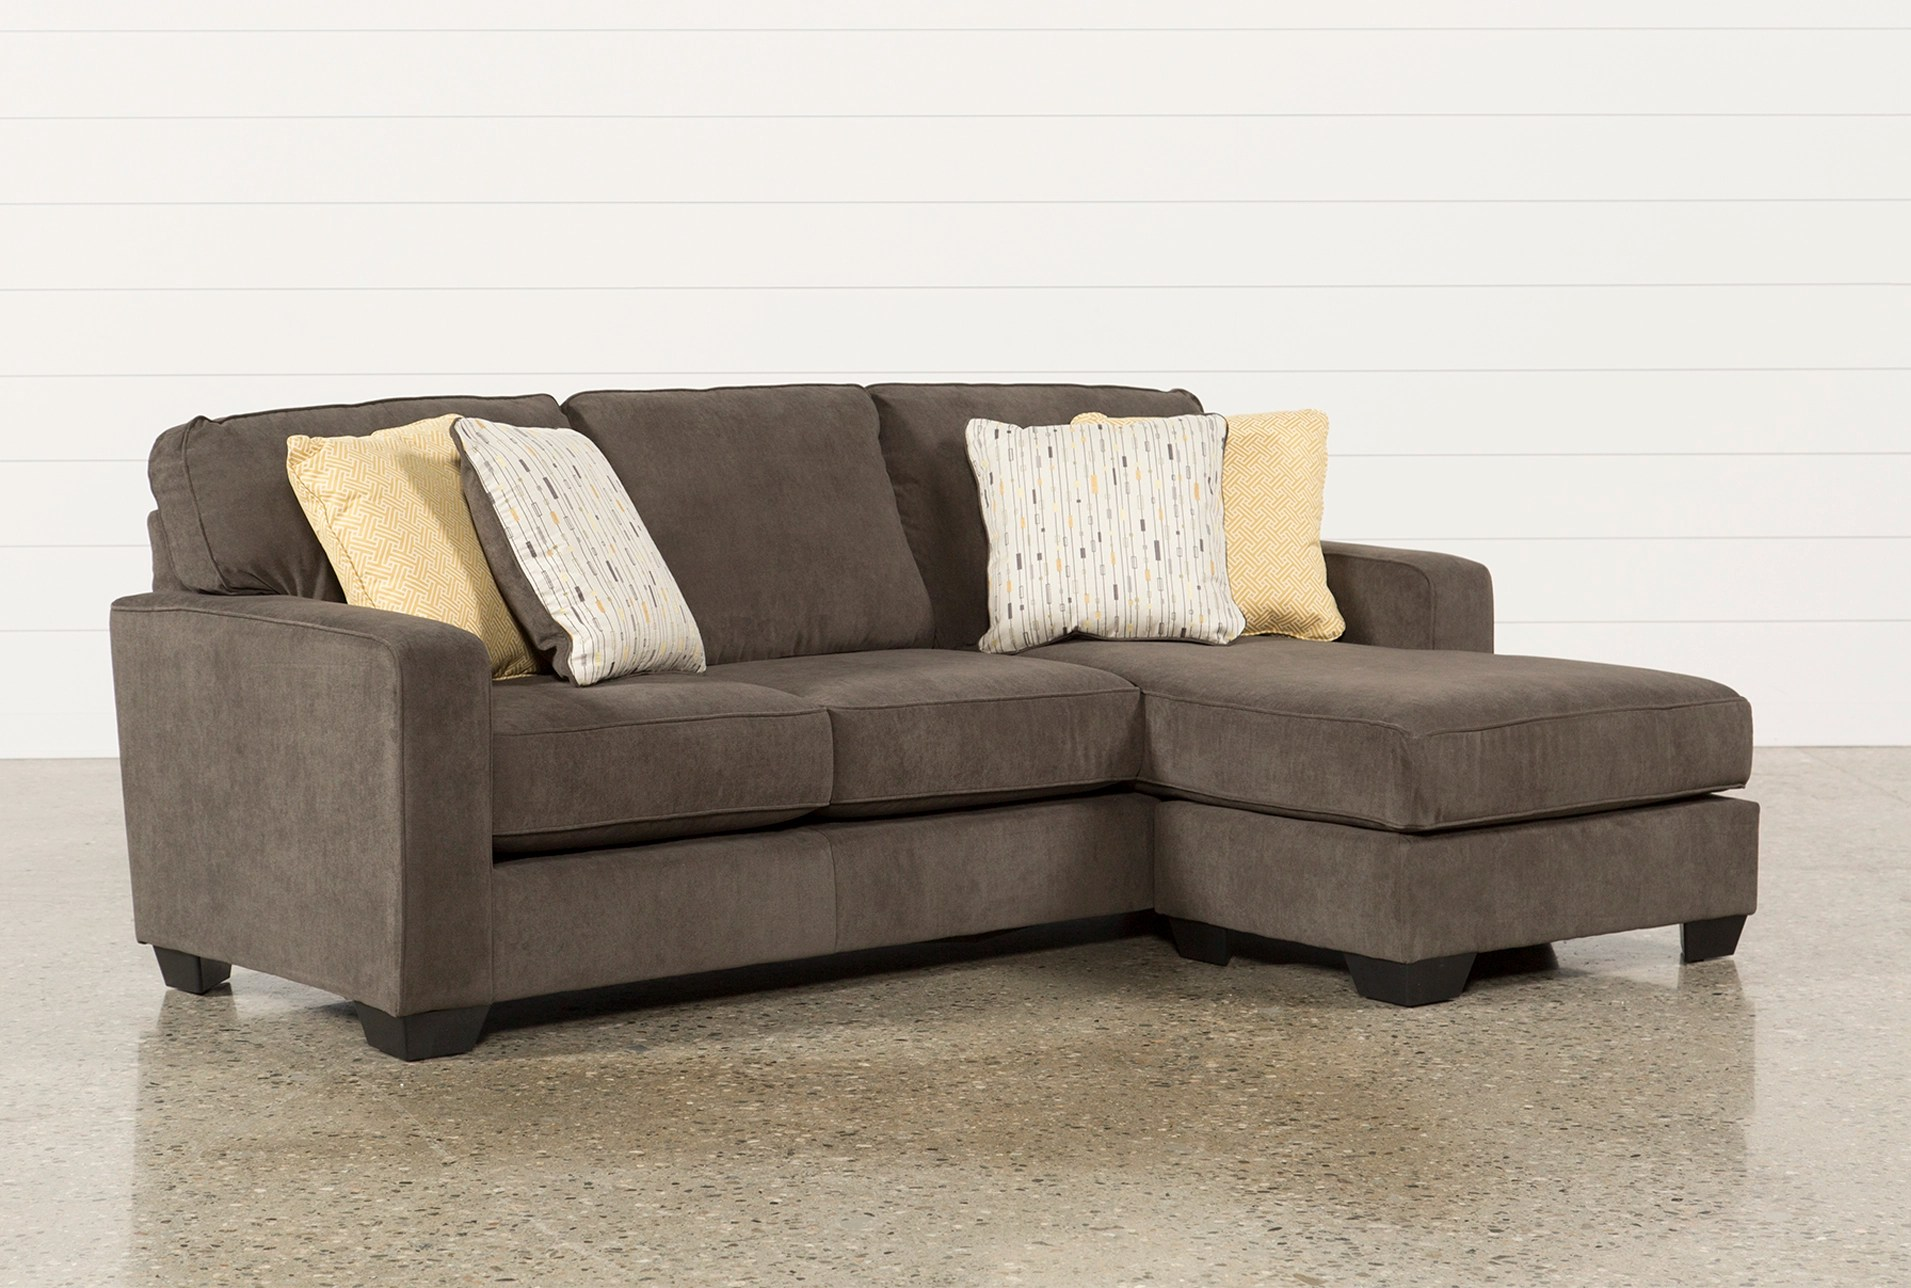 sofa chase side table designs zella chaise sectional andrew s furniture